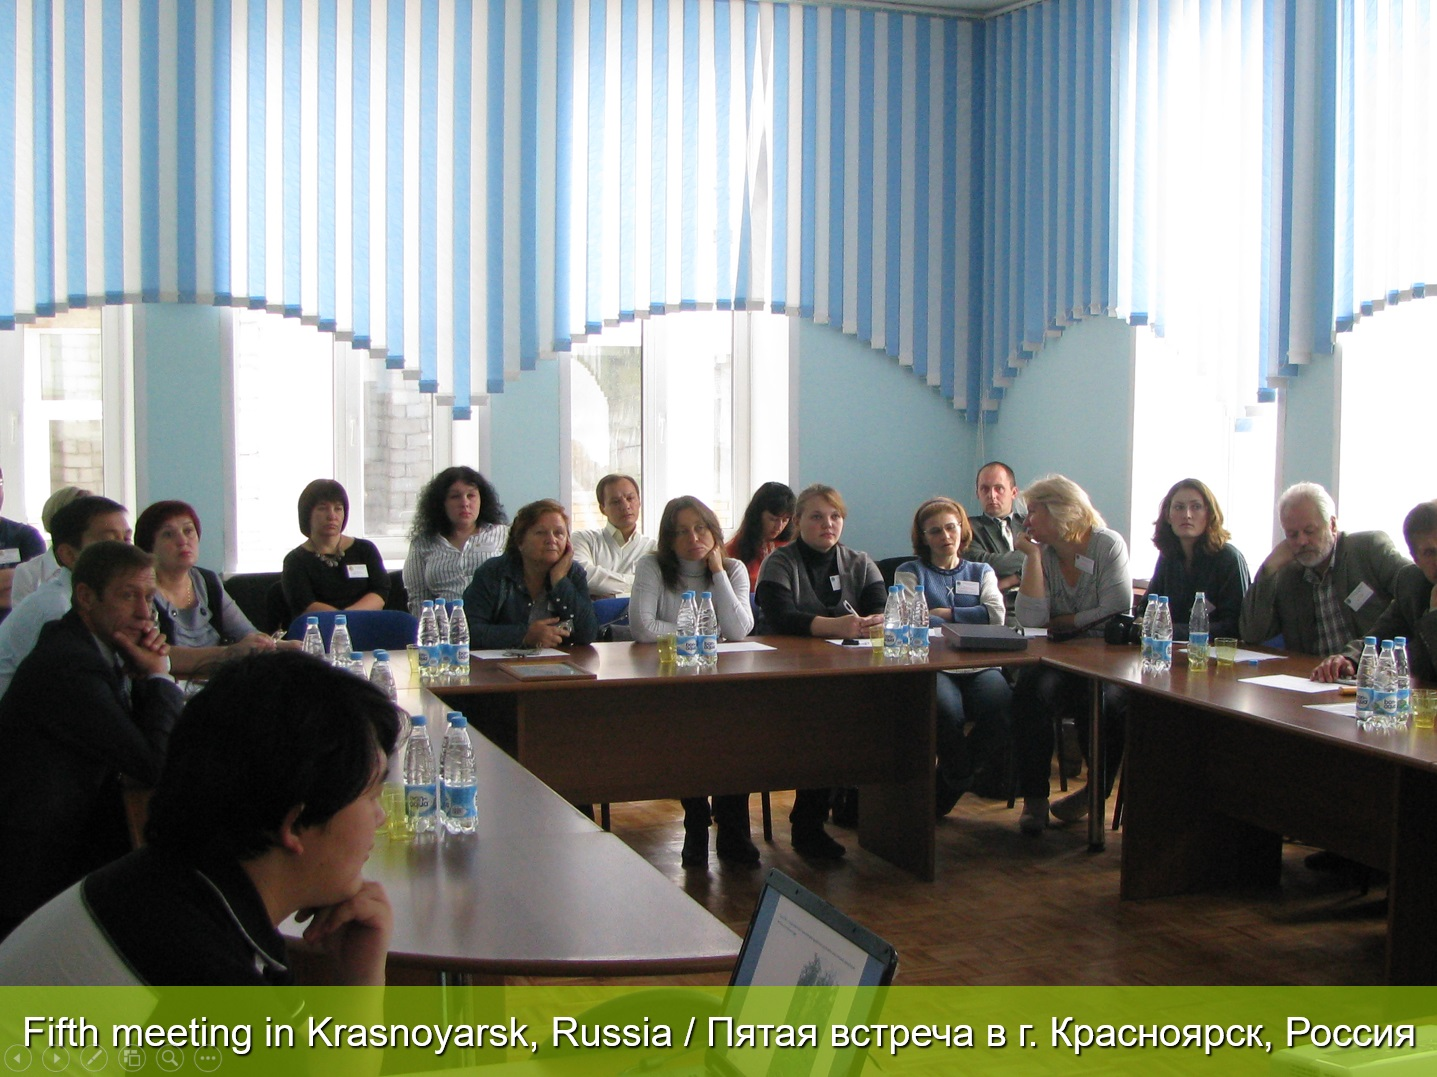 Fifth meeting in Krasnoyarsk